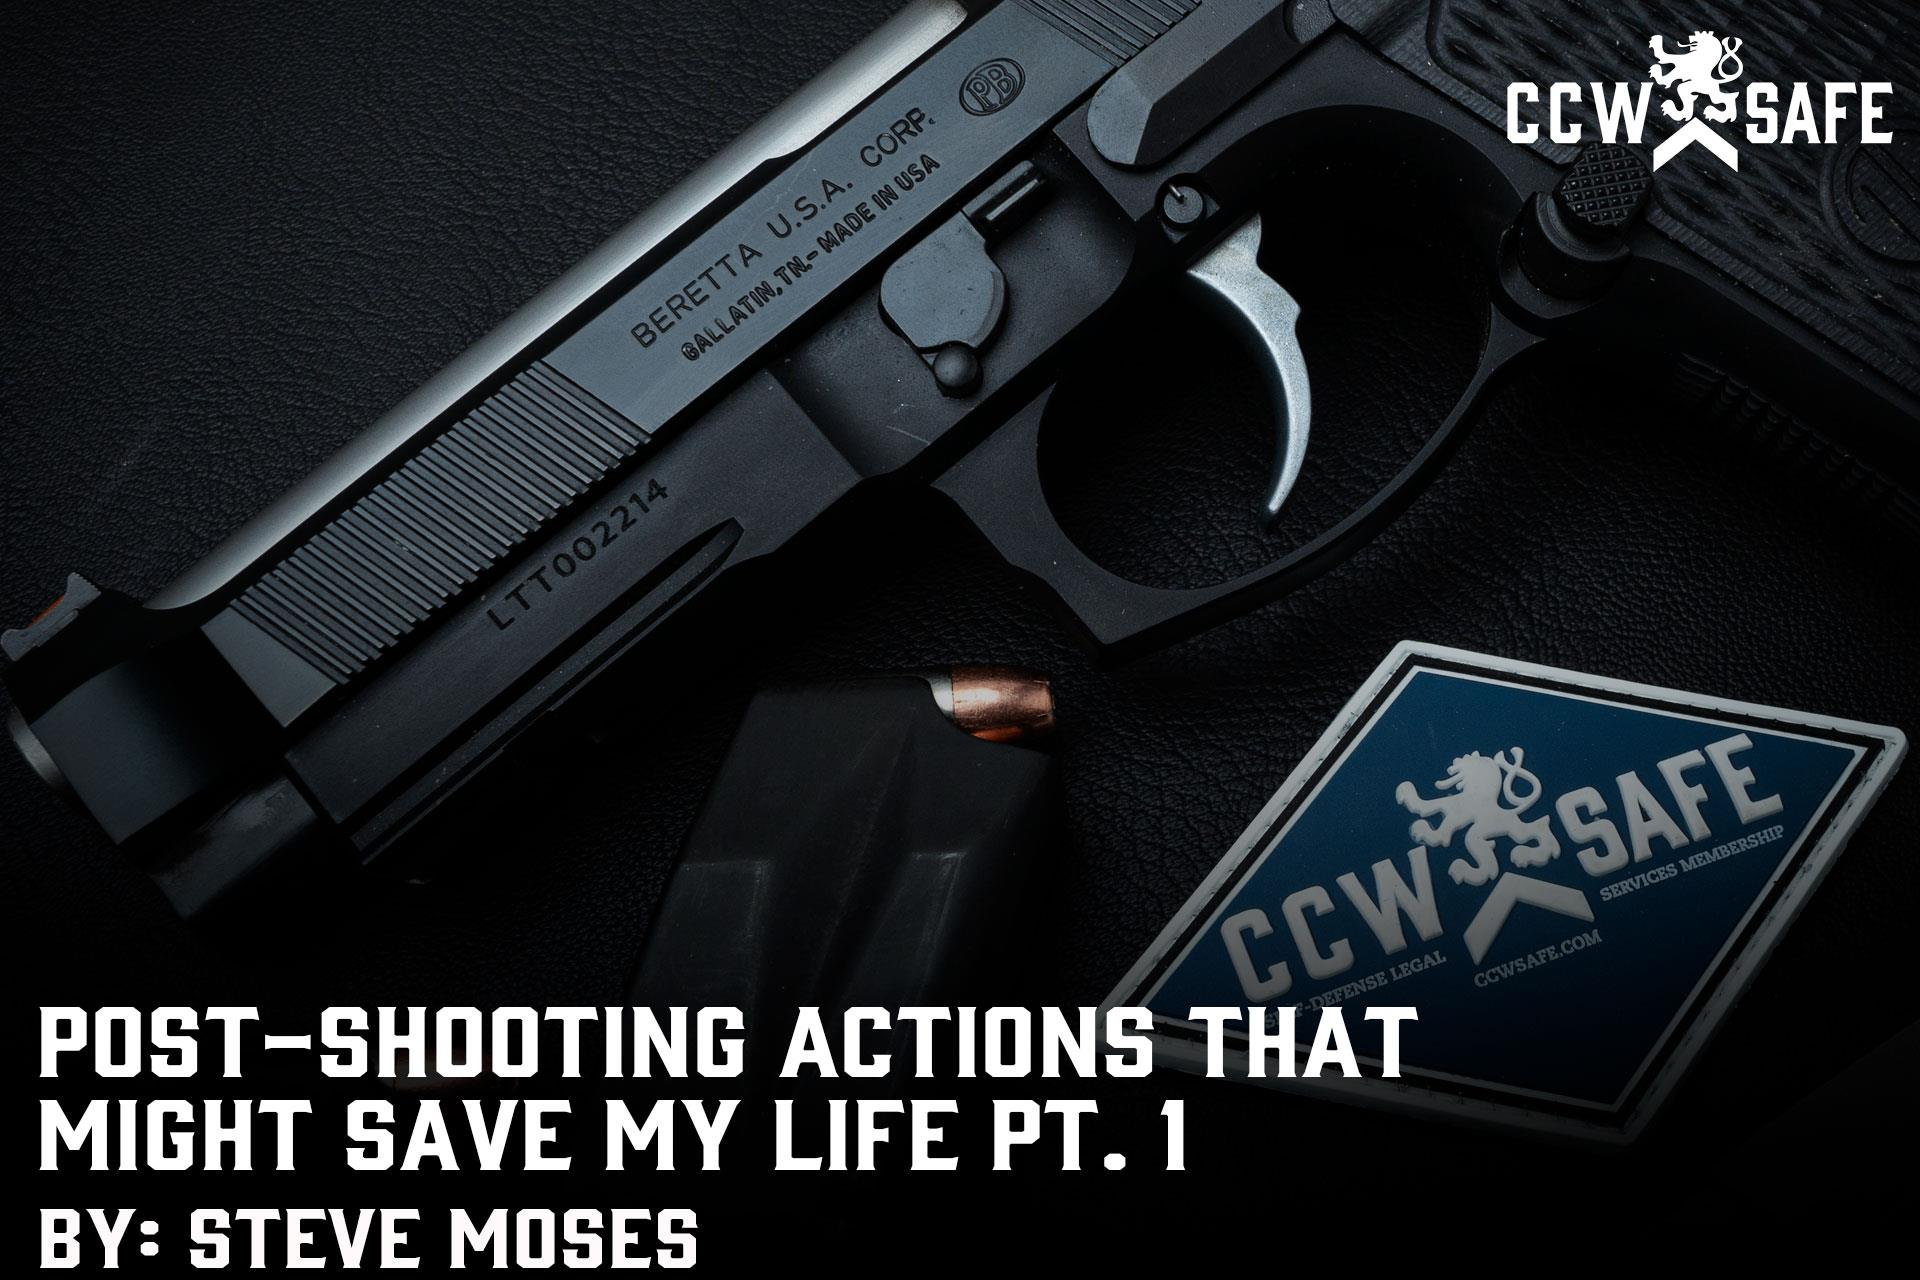 POST-SHOOTING ACTIONS THAT MIGHT SAVE MY LIFE PT.1